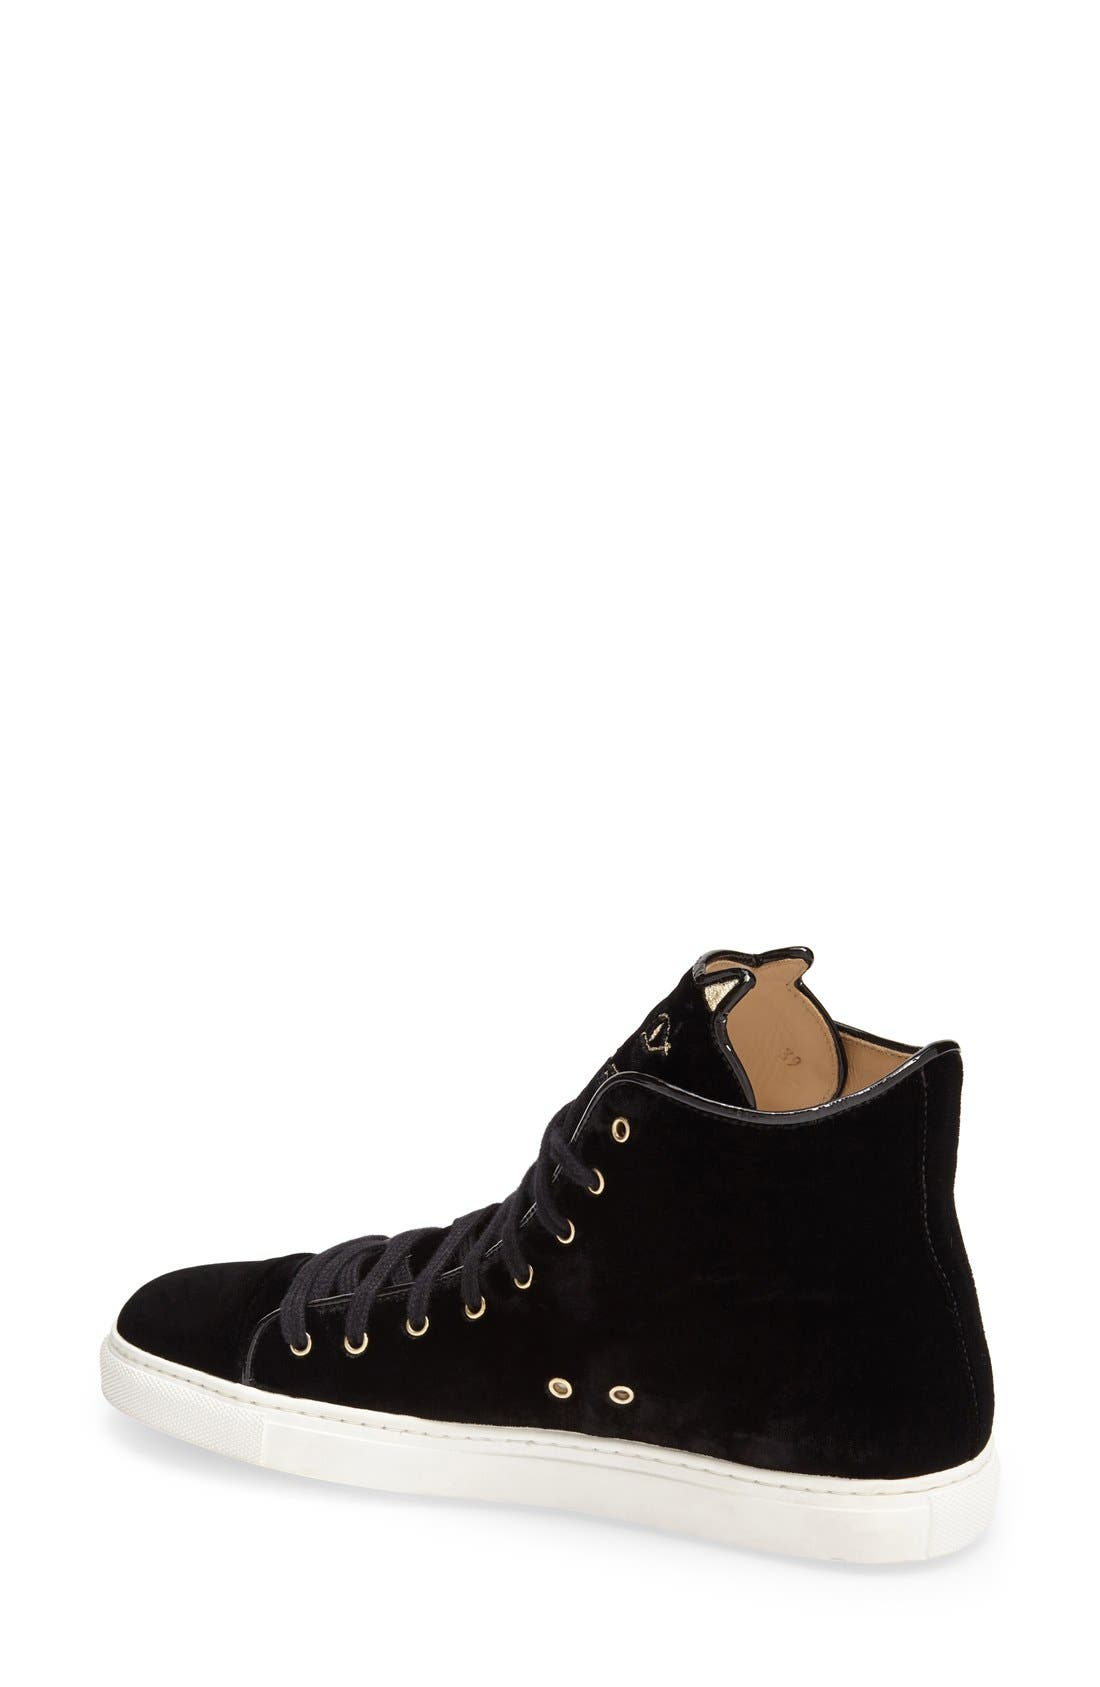 Alternate Image 2  - Charlotte Olympia 'Purrrfect' High Top Sneaker (Women)